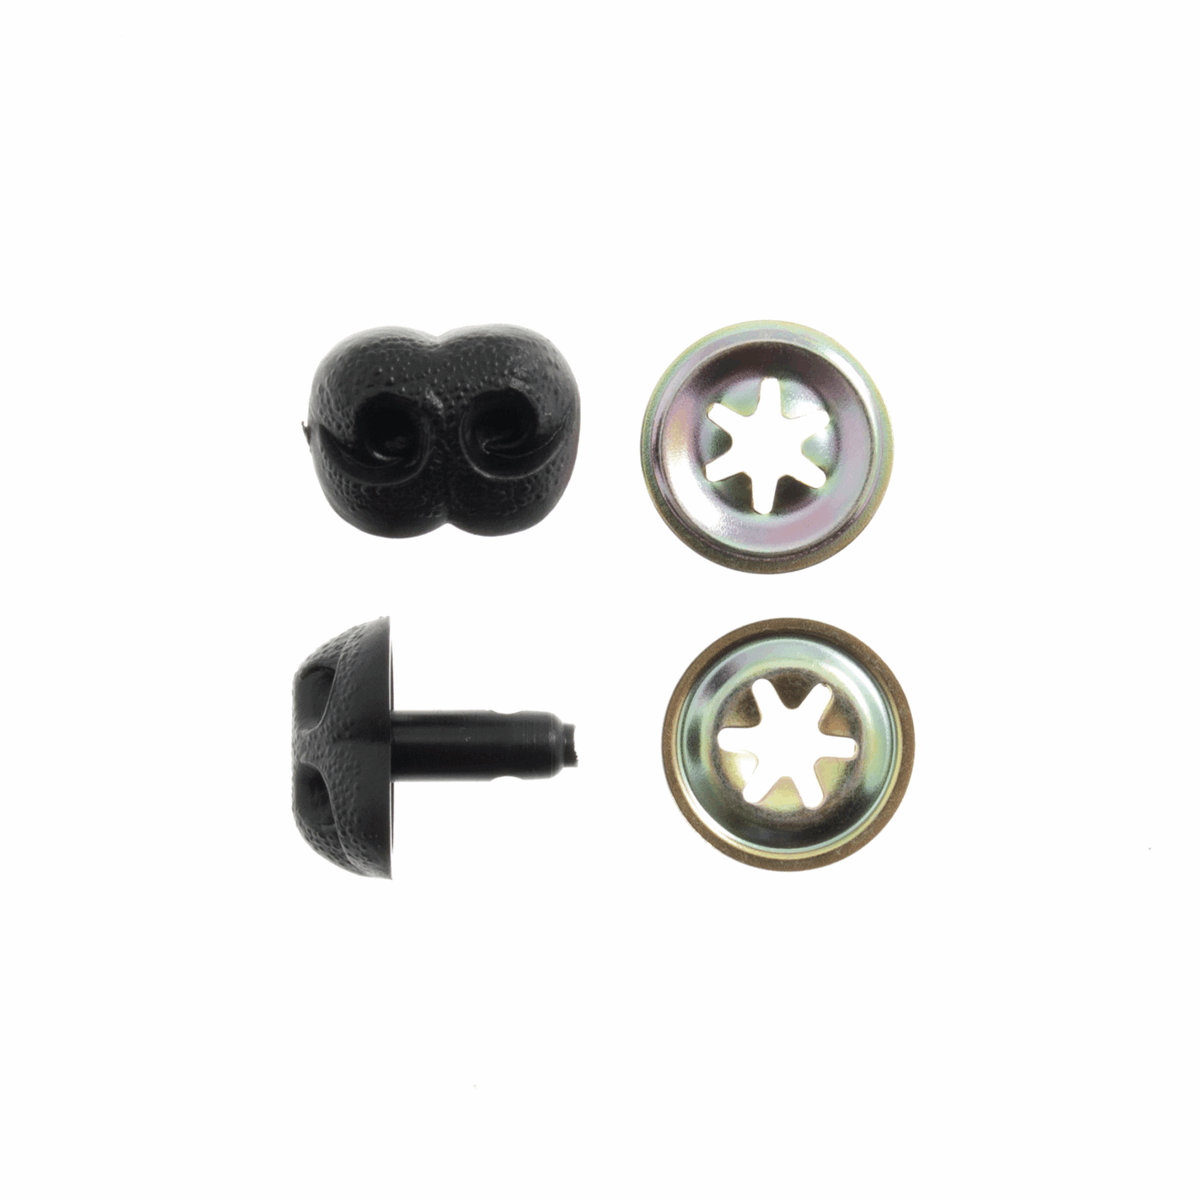 Picture of Toy Noses: Animal/Dog: 18mm: Black: 6 Pack